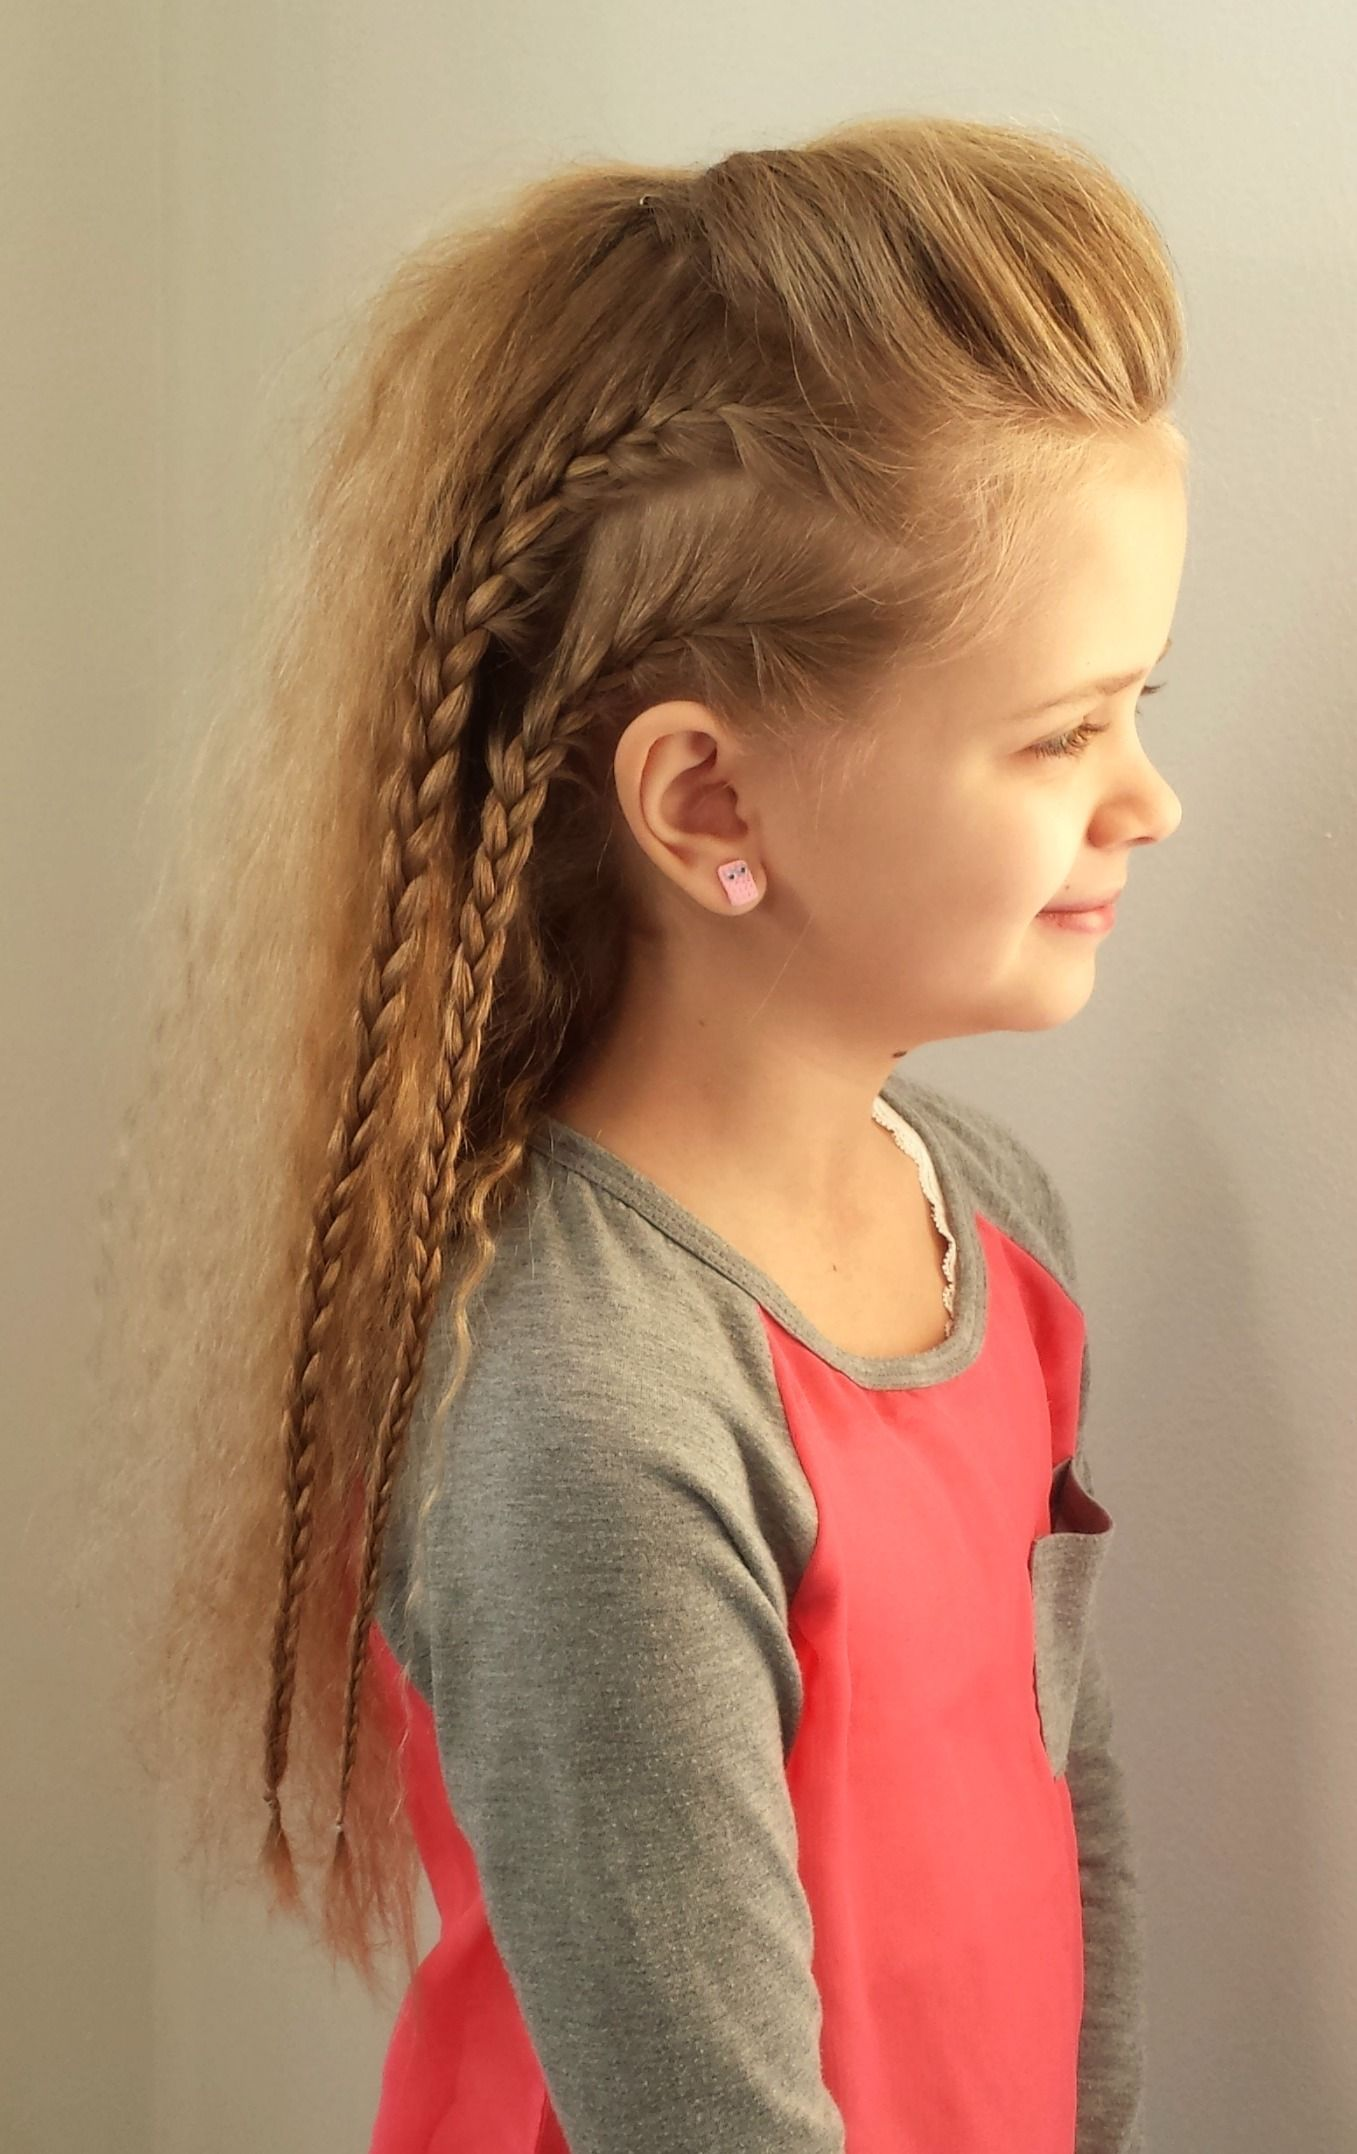 Viking Hairstyle This Style Is Inspired By Lagertha There Is A Great Tutorial By Silvousplaits I H Little Girl Hairstyles Little Girl Haircuts Hair Styles